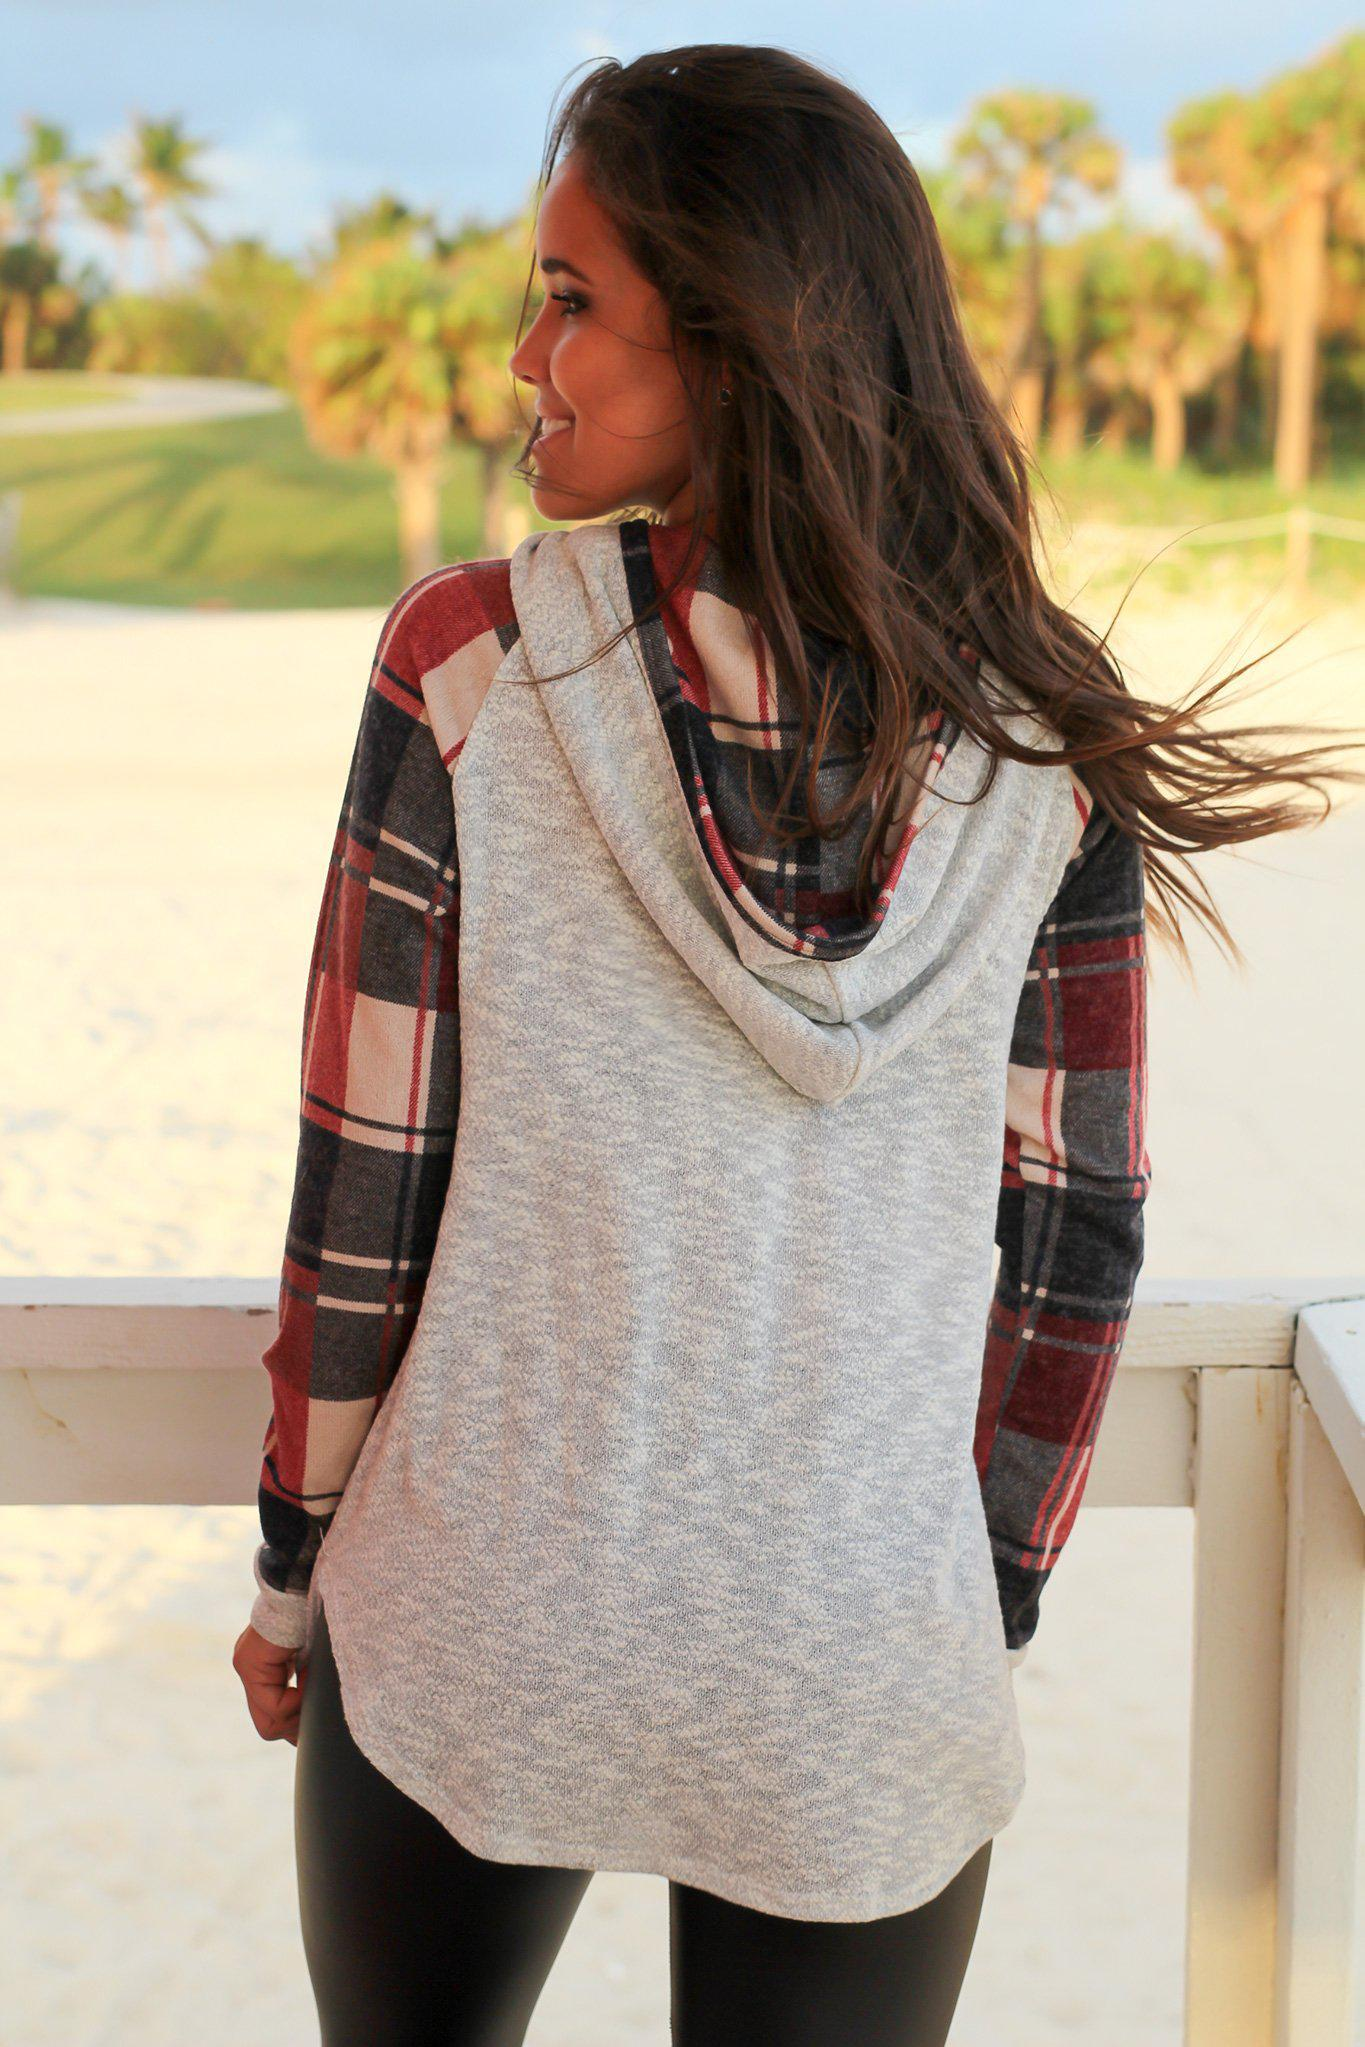 Heather Gray Hoodie with Plaid Sleeves